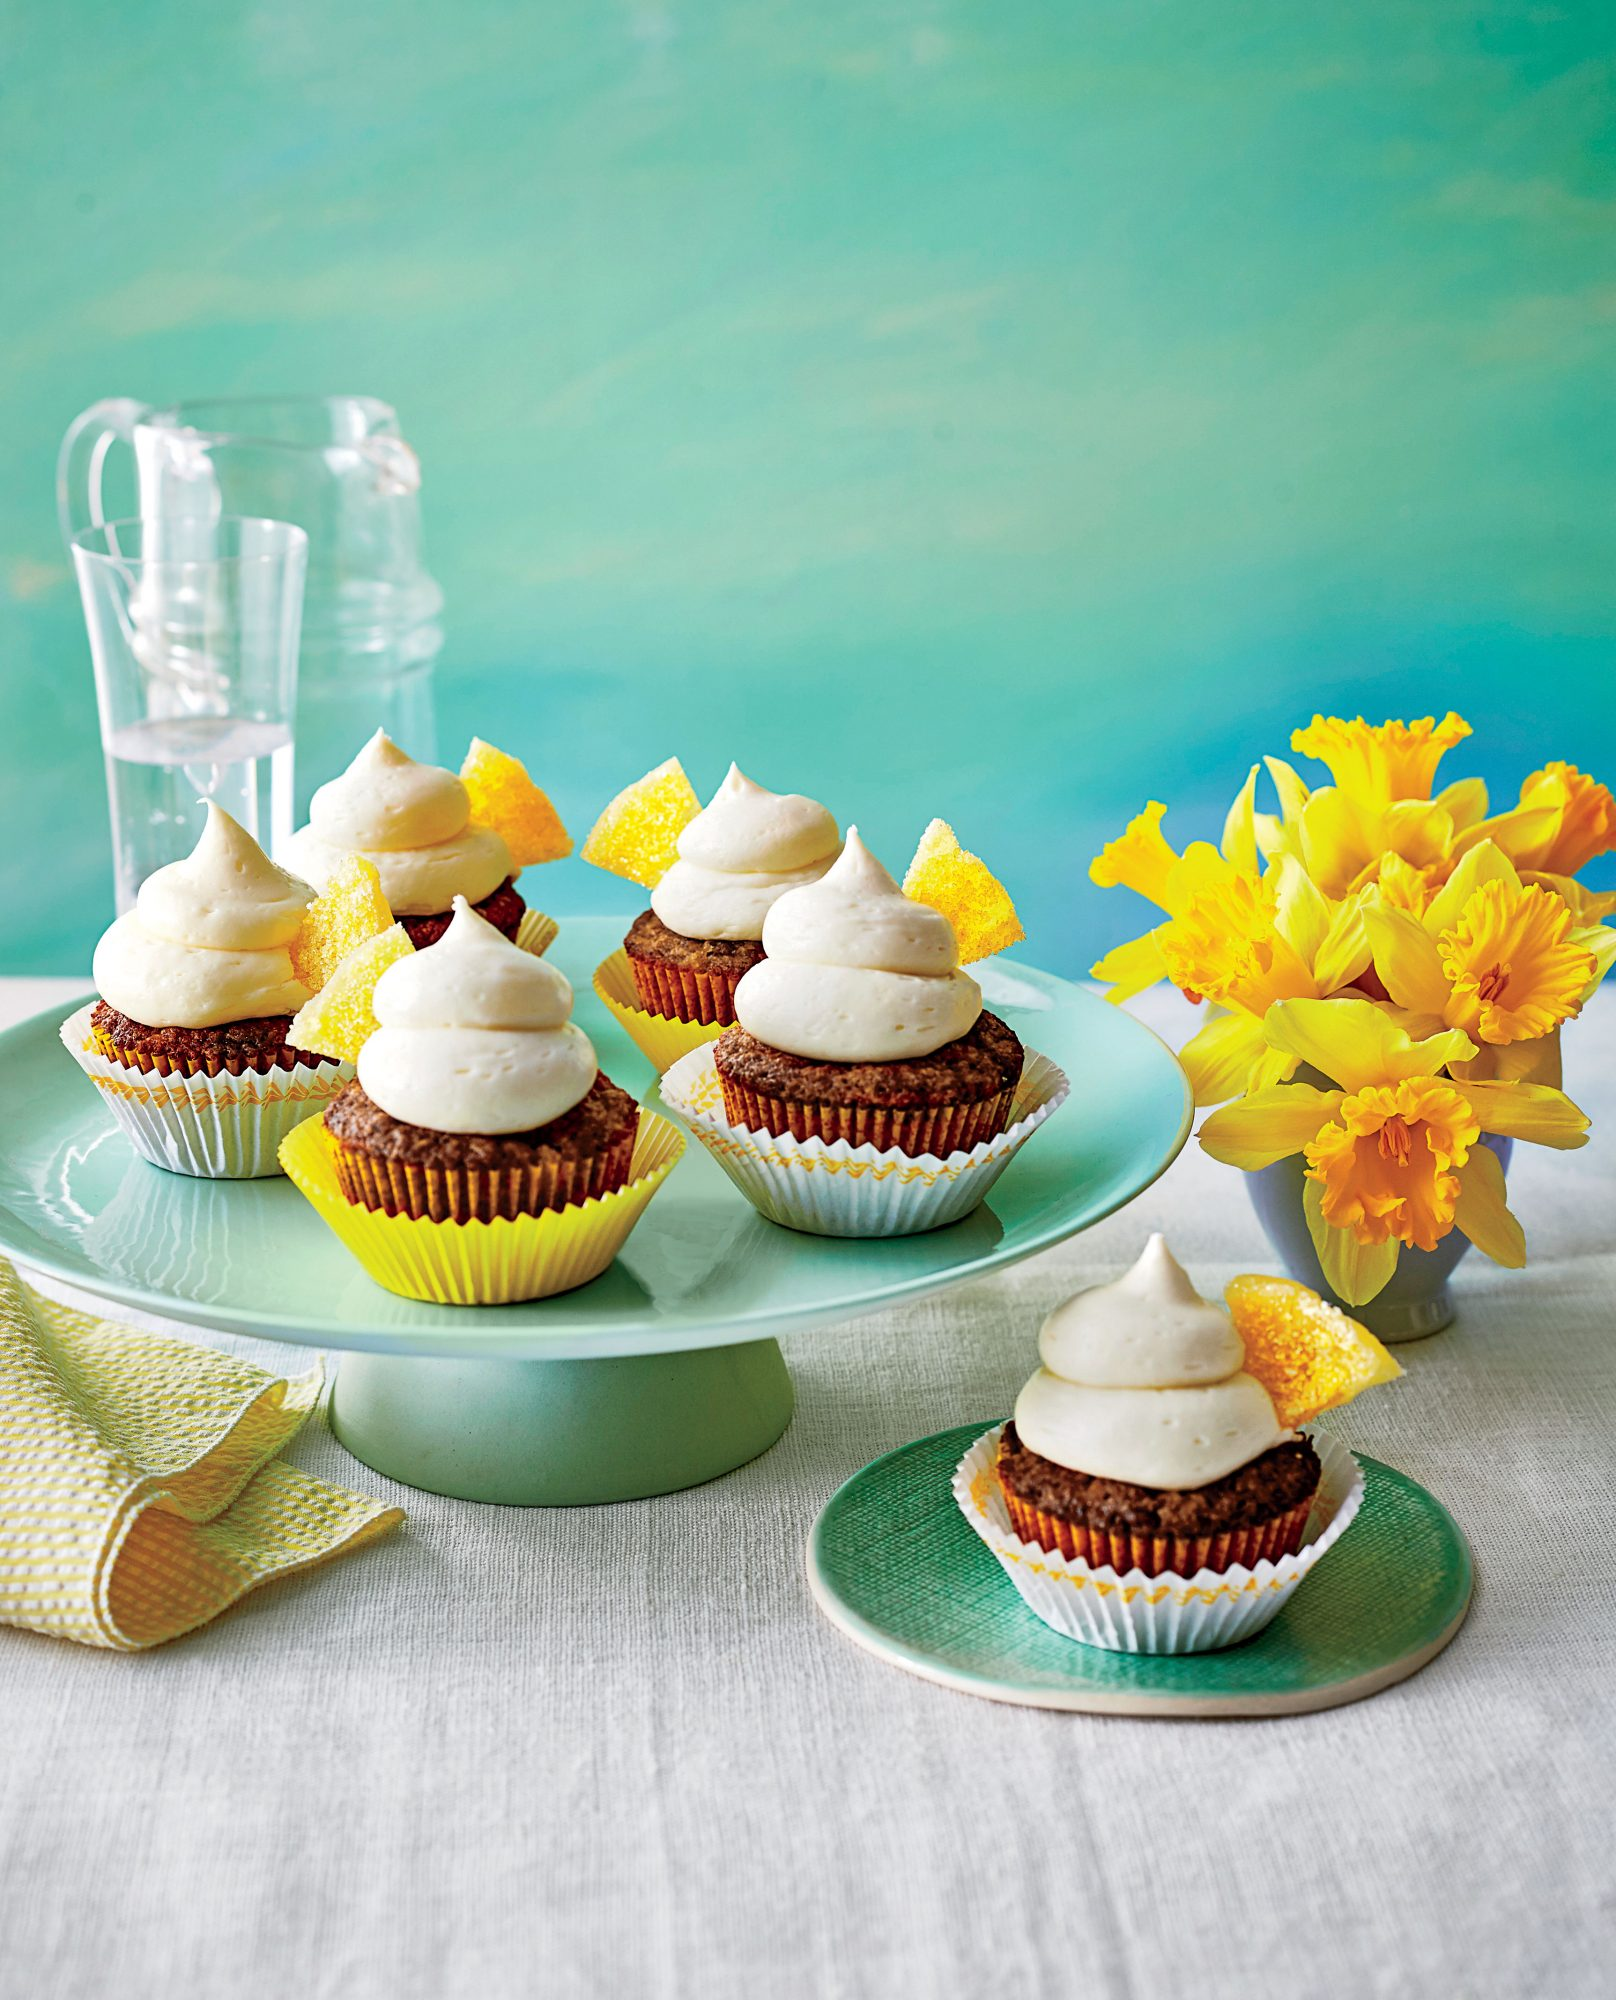 Hummingbird Cupcakes with Candied Pineapple Wedges